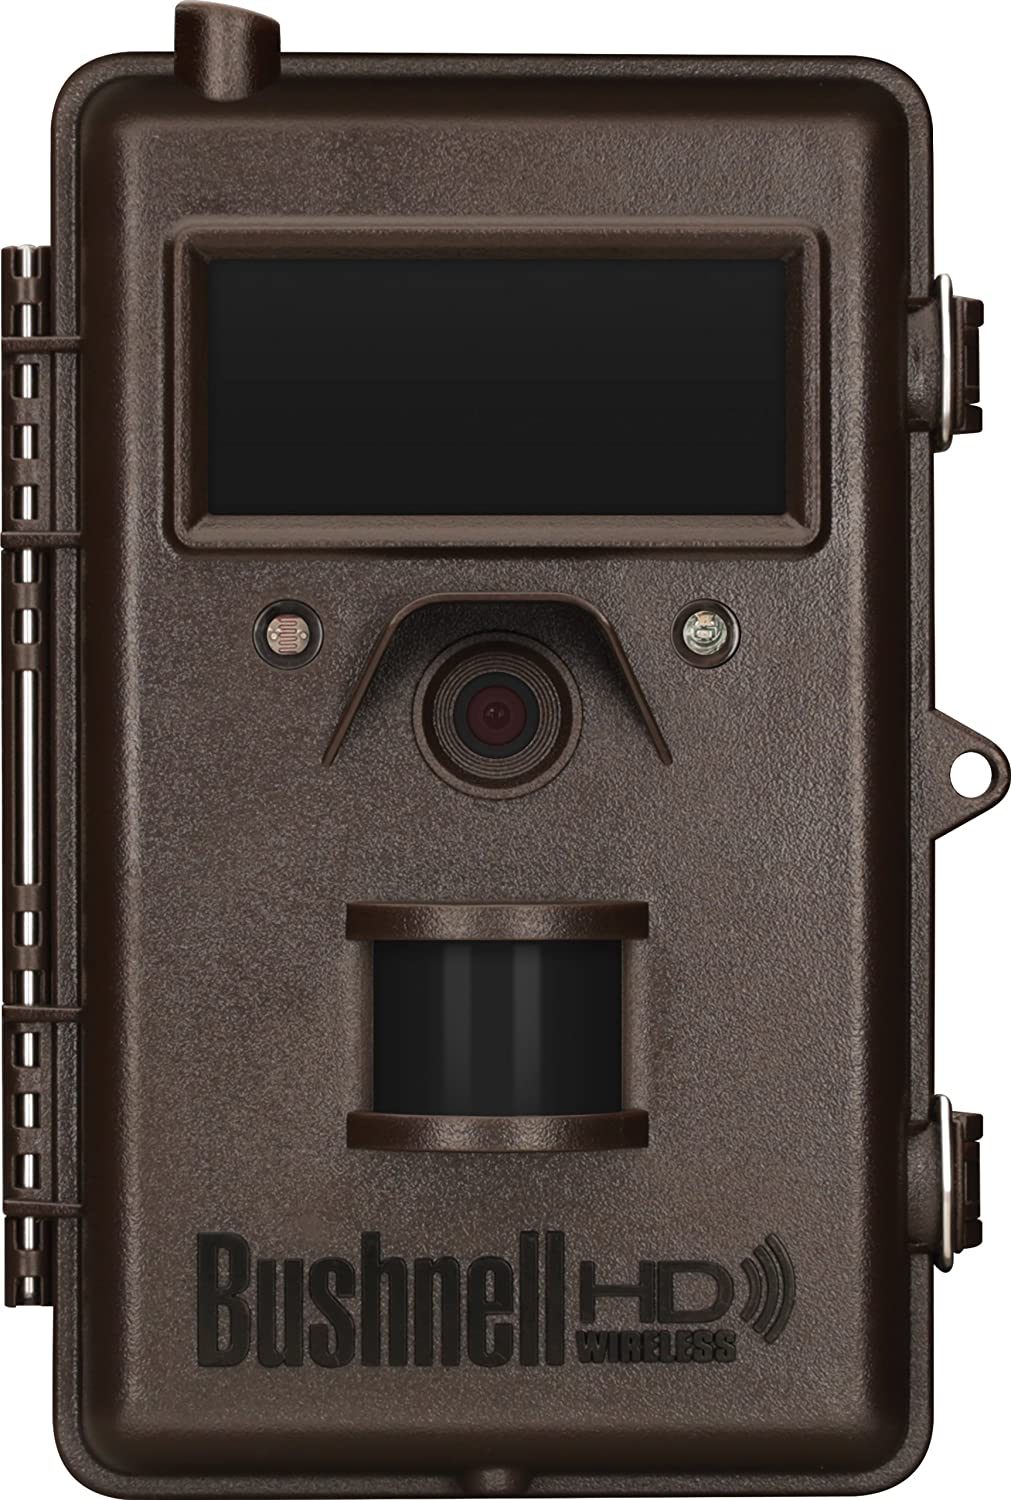 Bushnell 8MP Trophy Cam HD Wireless Black LED Trail Camera with Night Vision